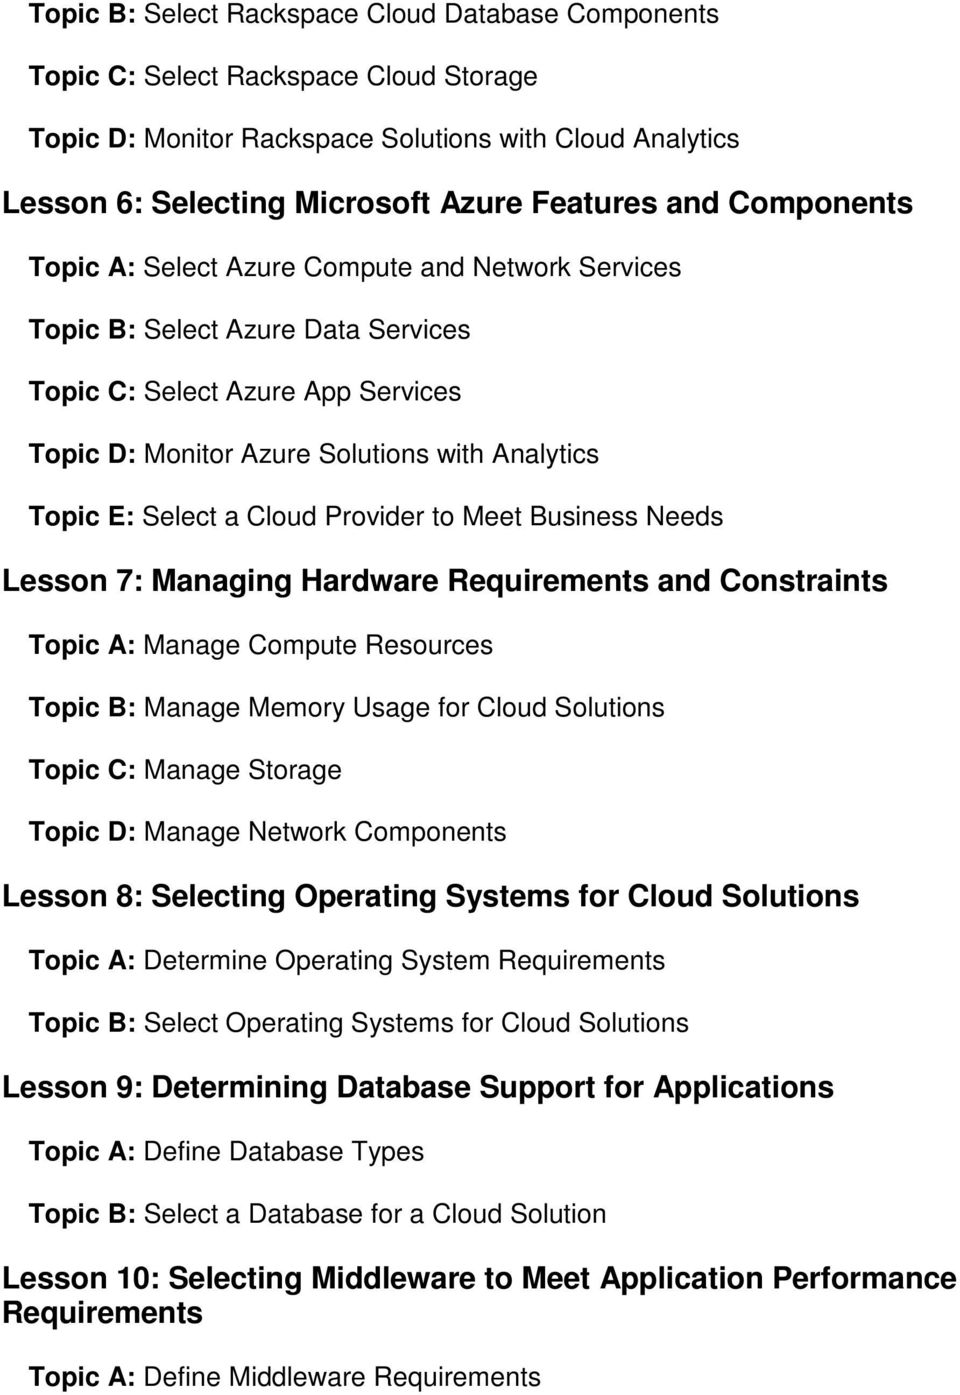 Cloud Provider to Meet Business Needs Lesson 7: Managing Hardware Requirements and Constraints Topic A: Manage Compute Resources Topic B: Manage Memory Usage for Cloud Solutions Topic C: Manage